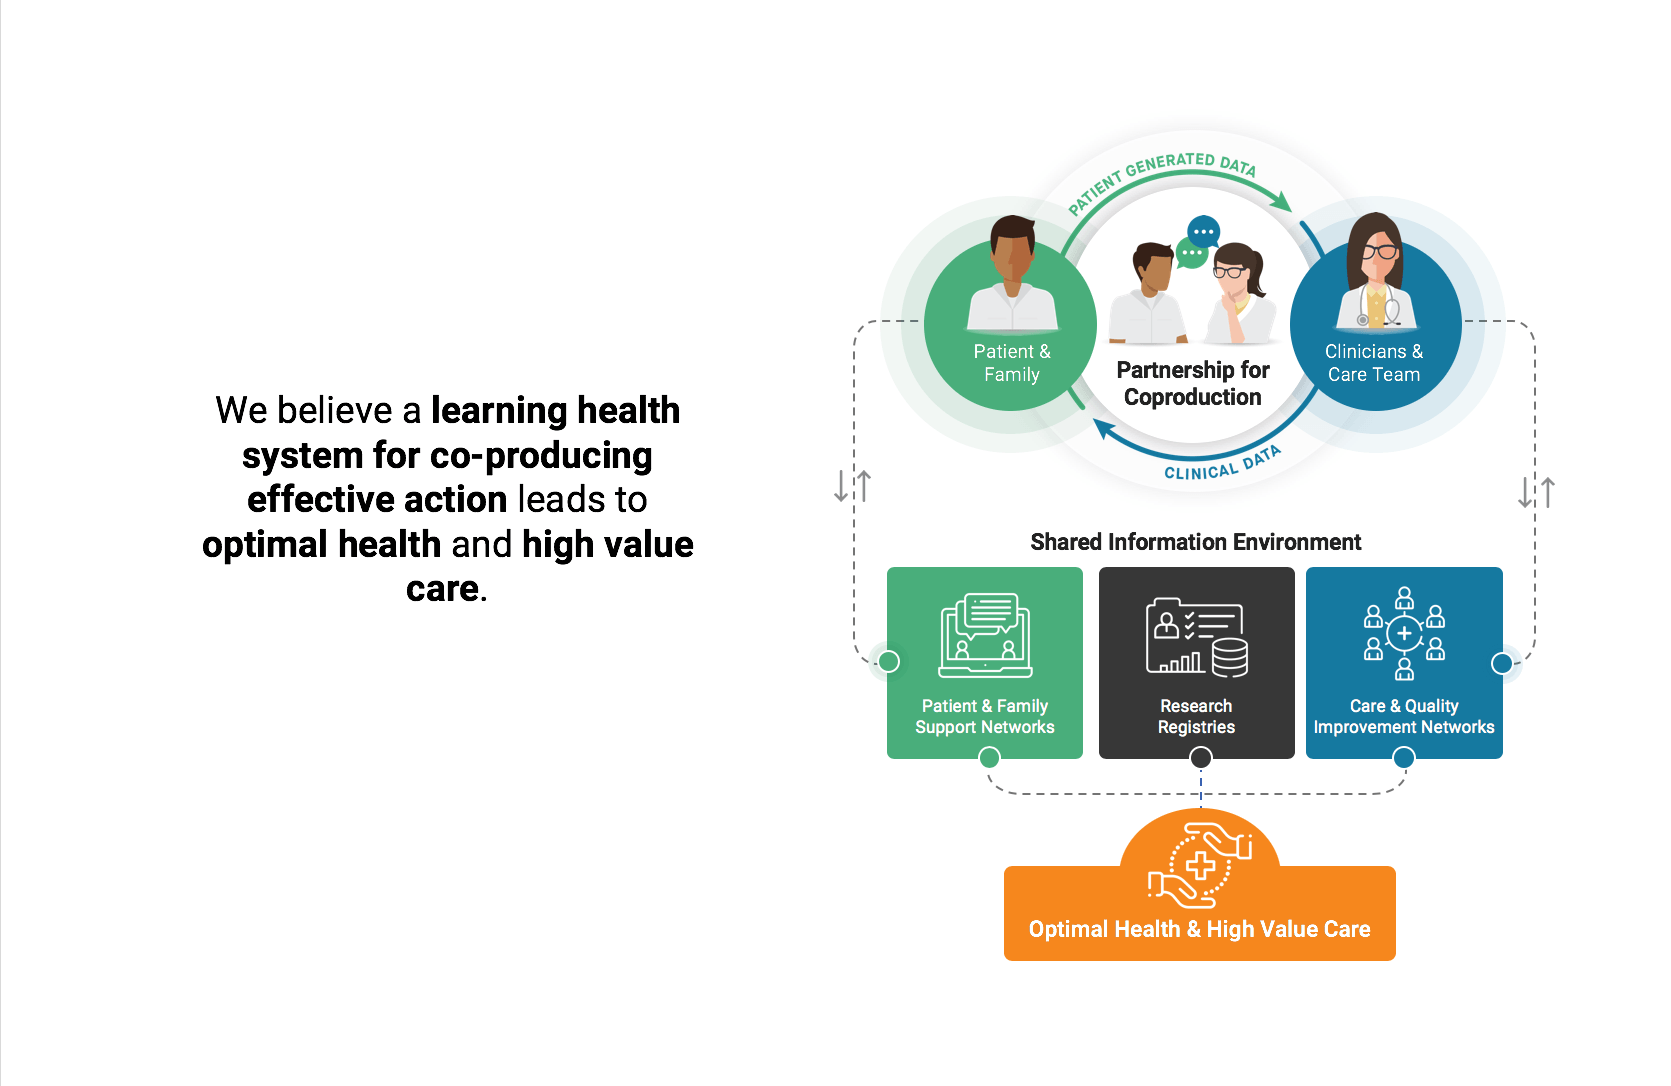 9. Learning health system